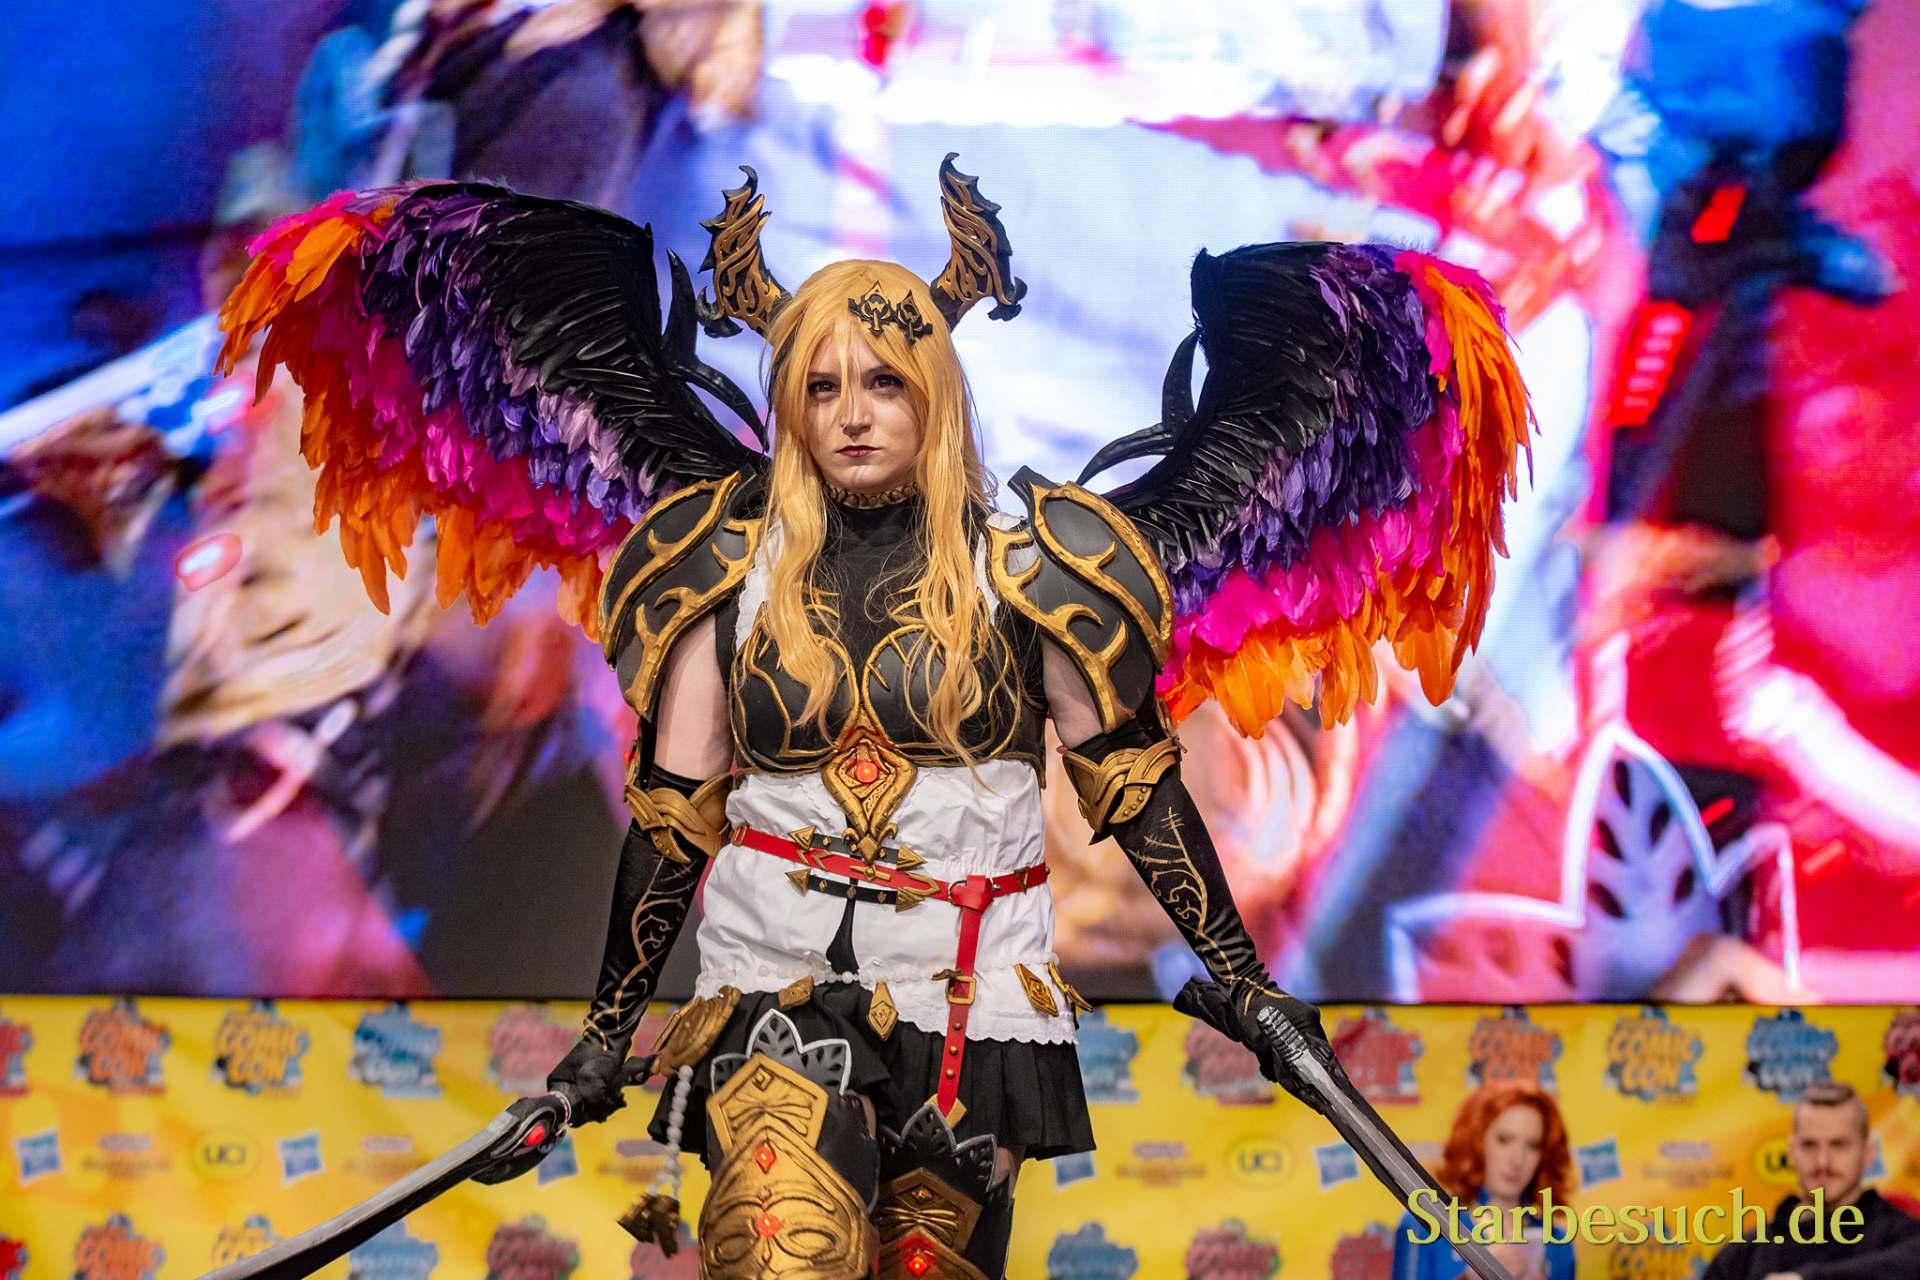 DORTMUND, GERMANY - December 1st 2018: Cosplayer nica_cosplay_de portrays the character Olivia from Rage of Bahamut (Game) at German Comic Con Dortmund, a two day fan convention